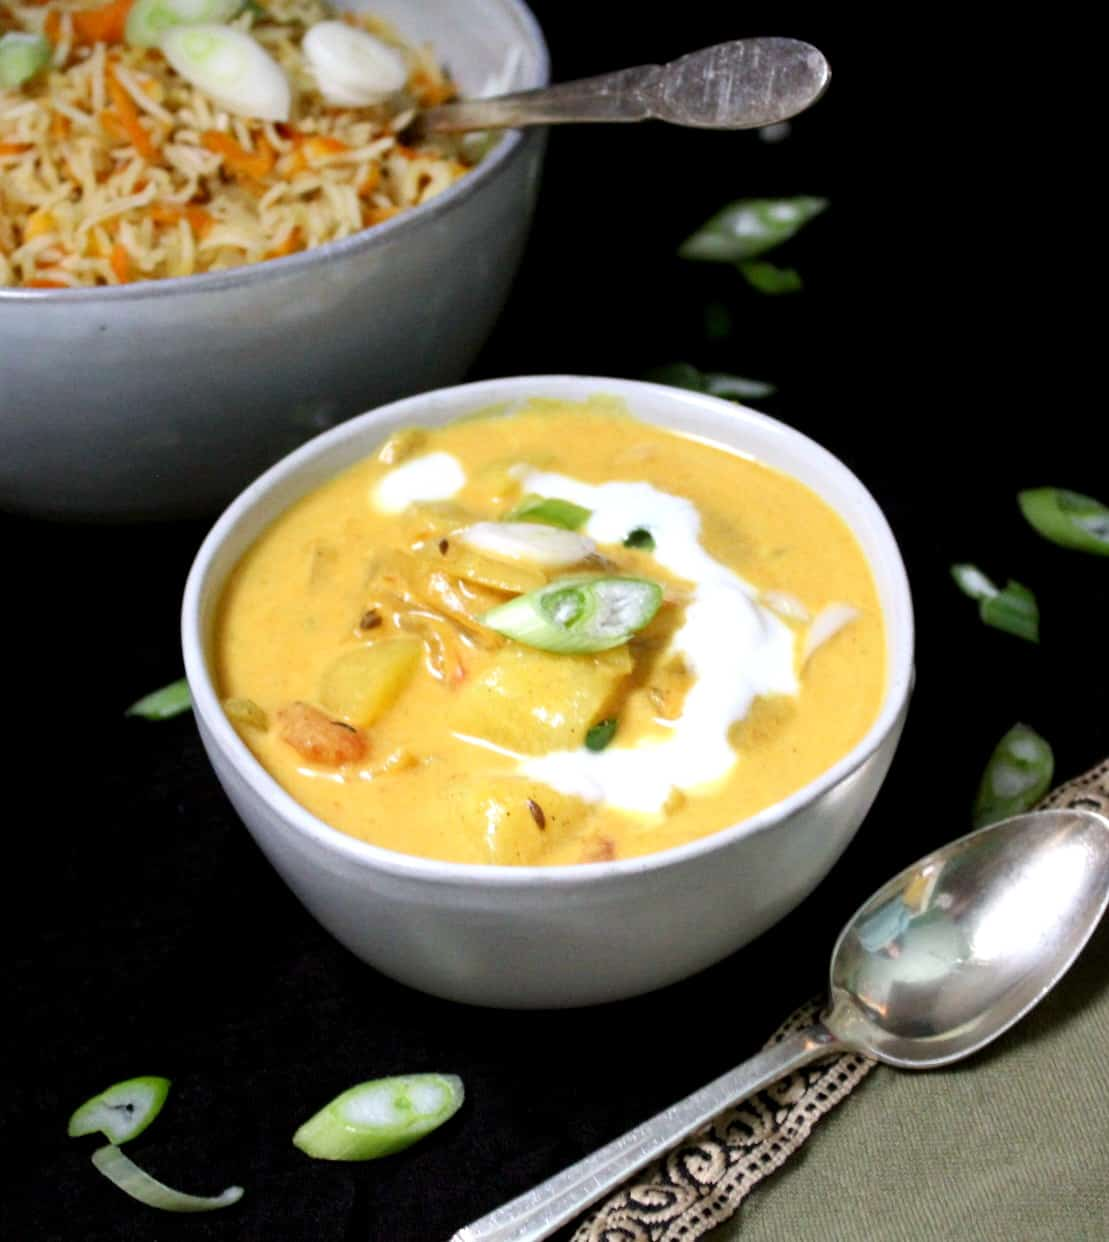 Coconut curry with tomatoes and potatoes in a ceramic bowl served with carrot rice and garnished with scallions.